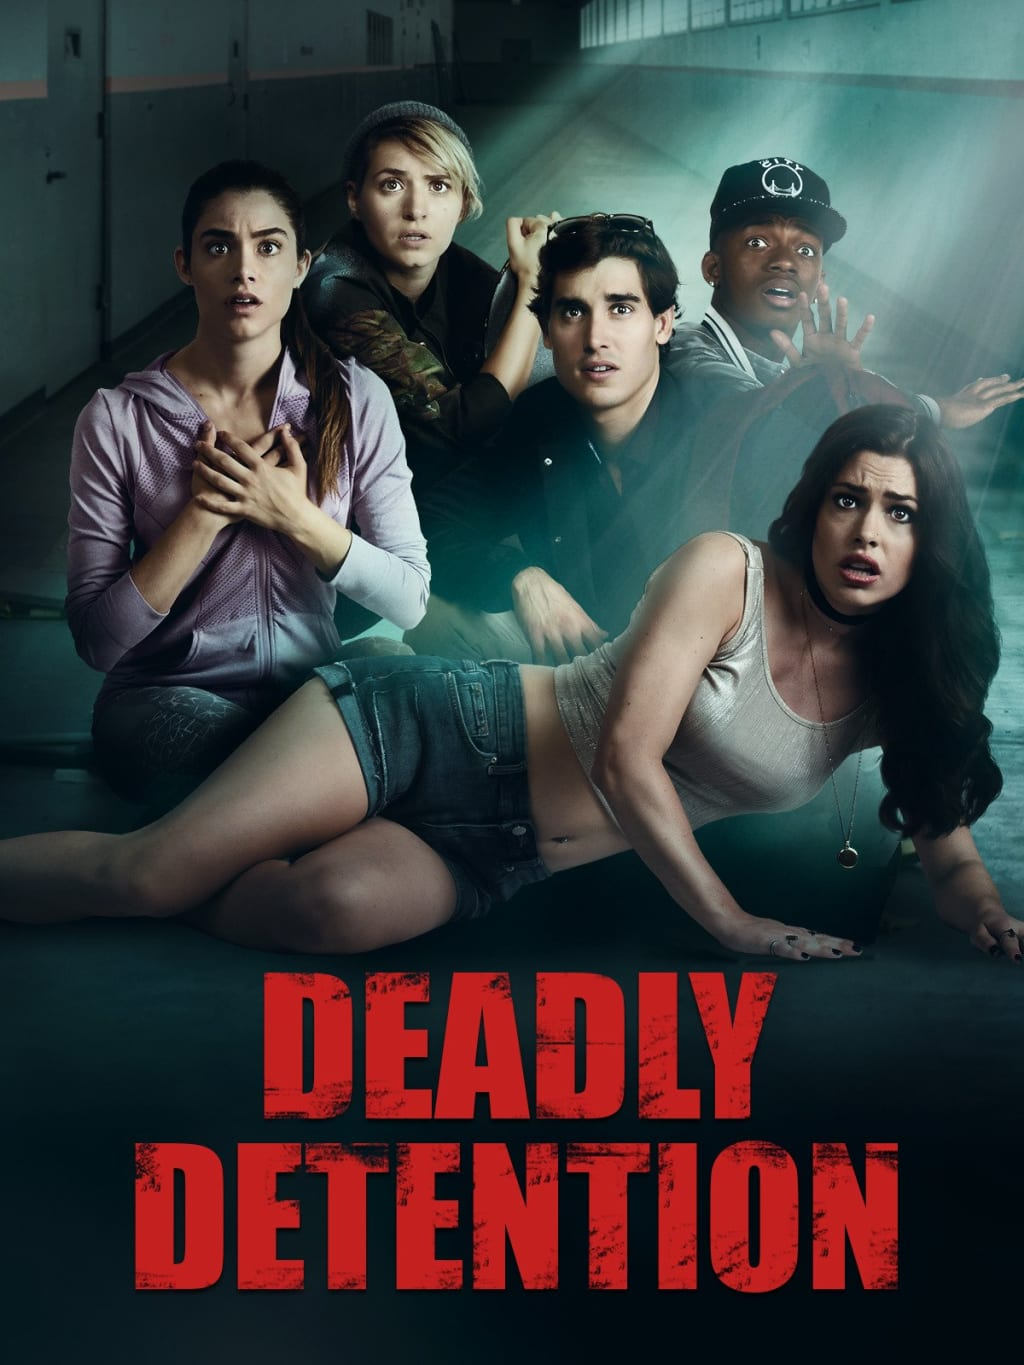 Film Review: 'Deadly Detention'